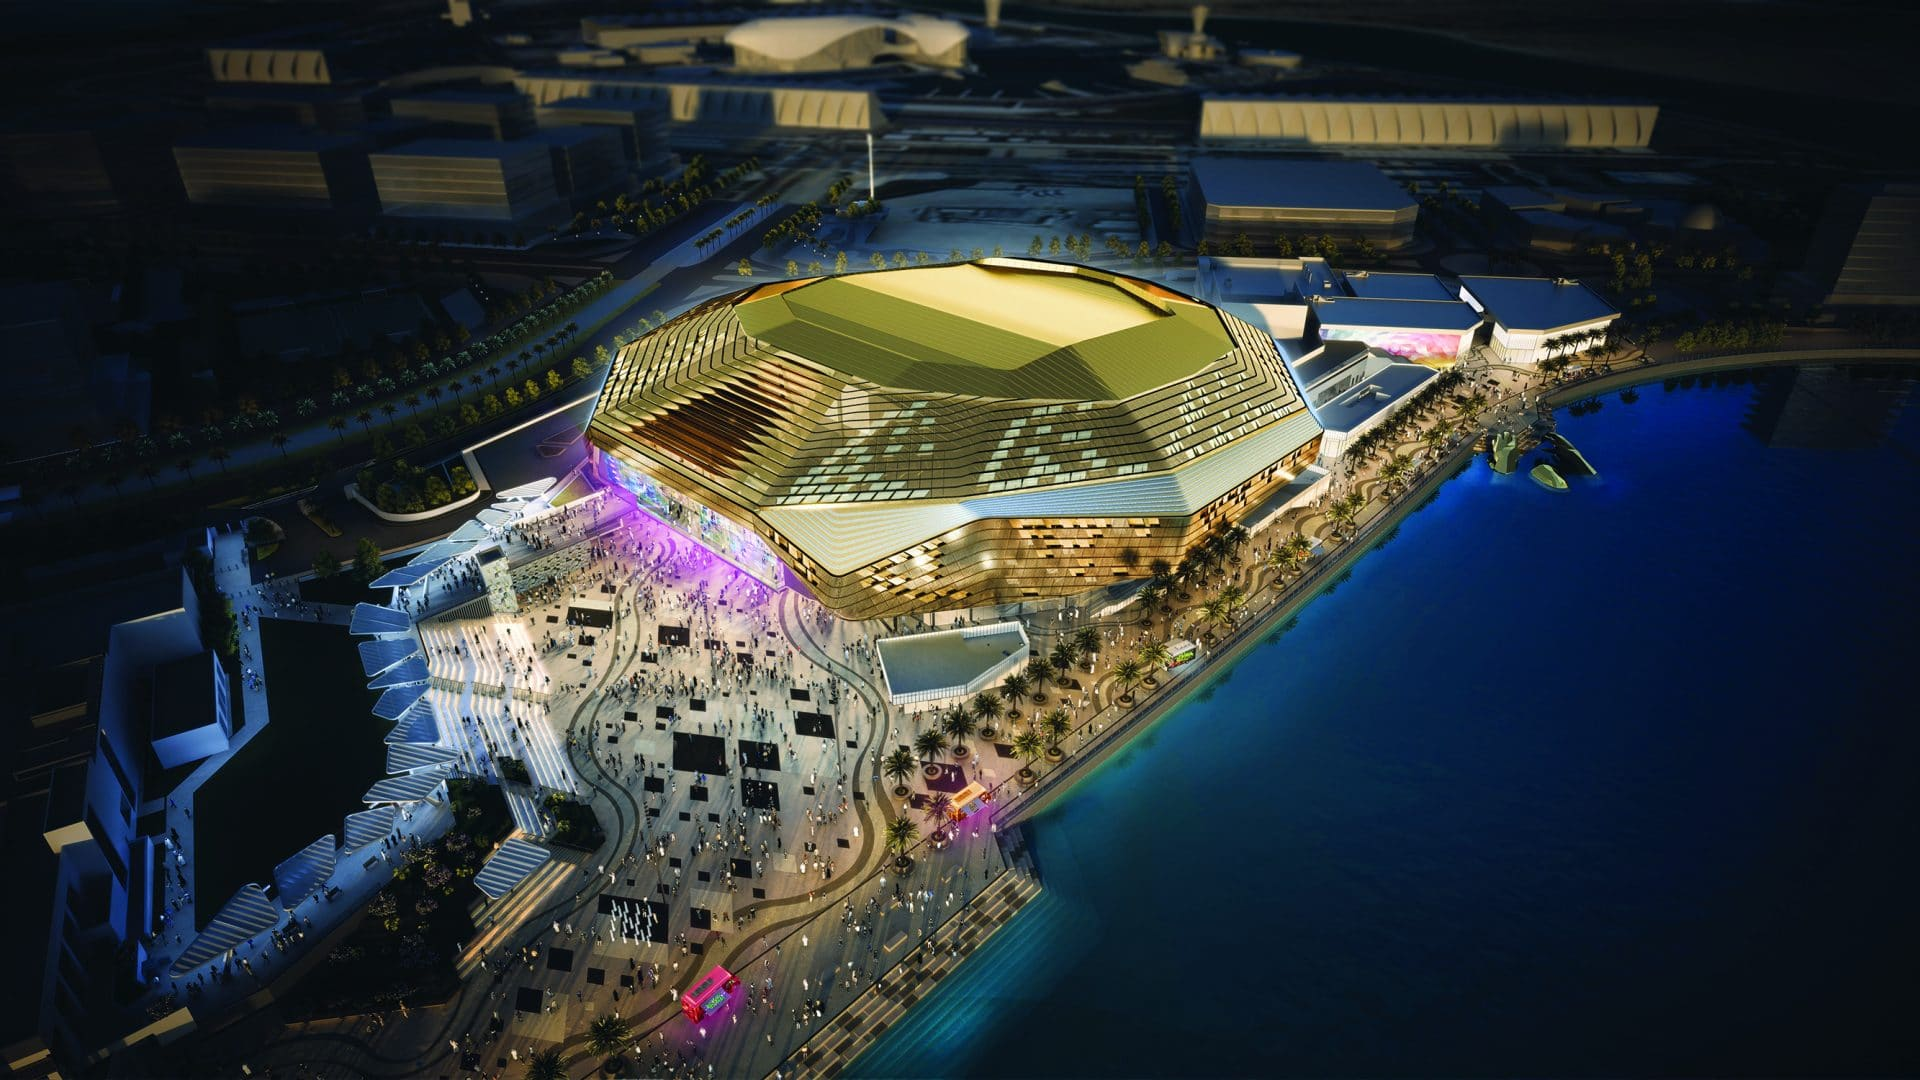 aerial view of the Yas Bay Arena